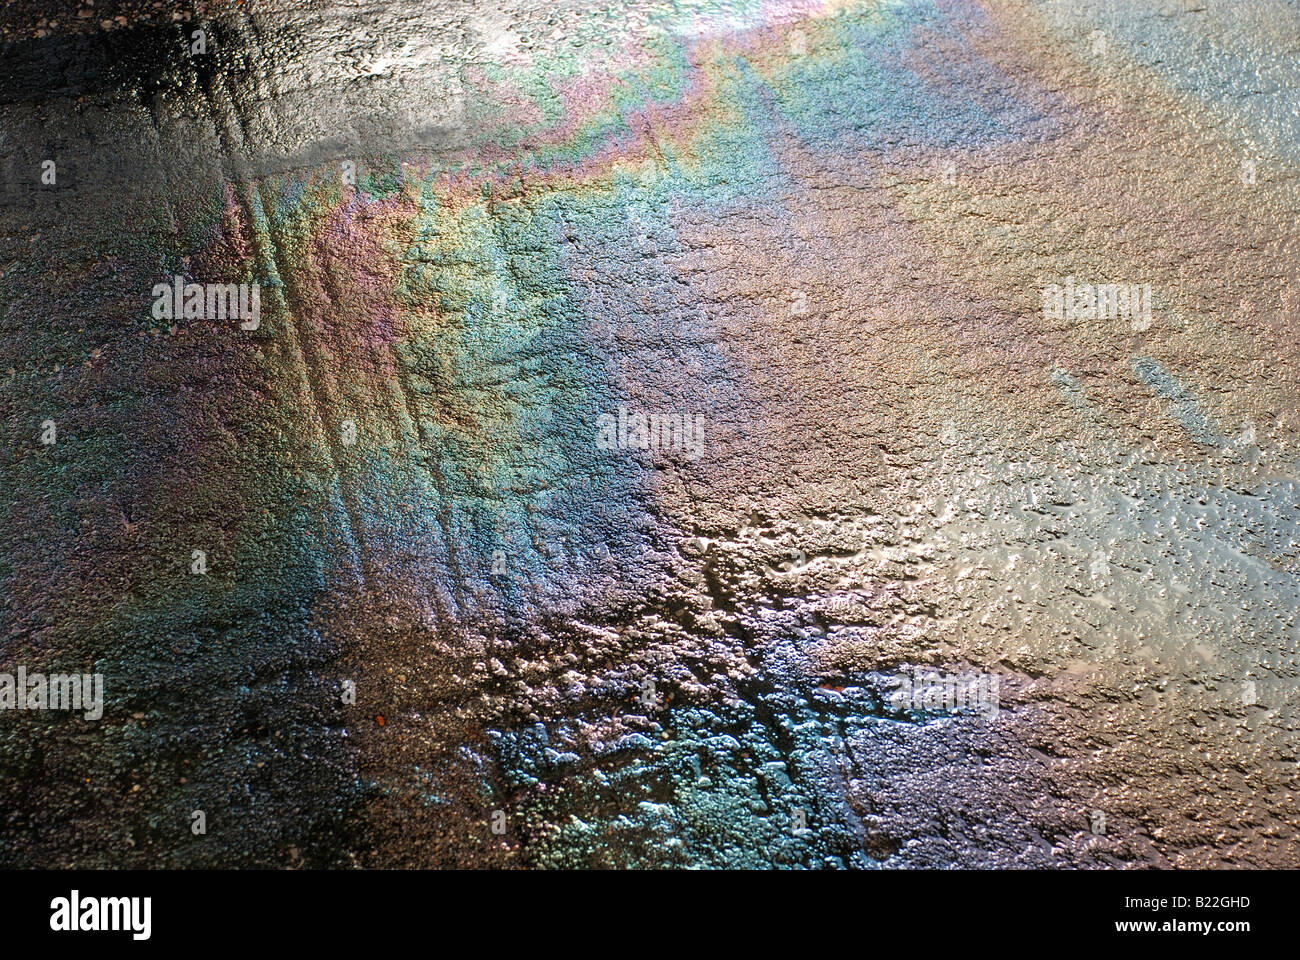 oilslick on wet tarmac with refracted light colours - Stock Image